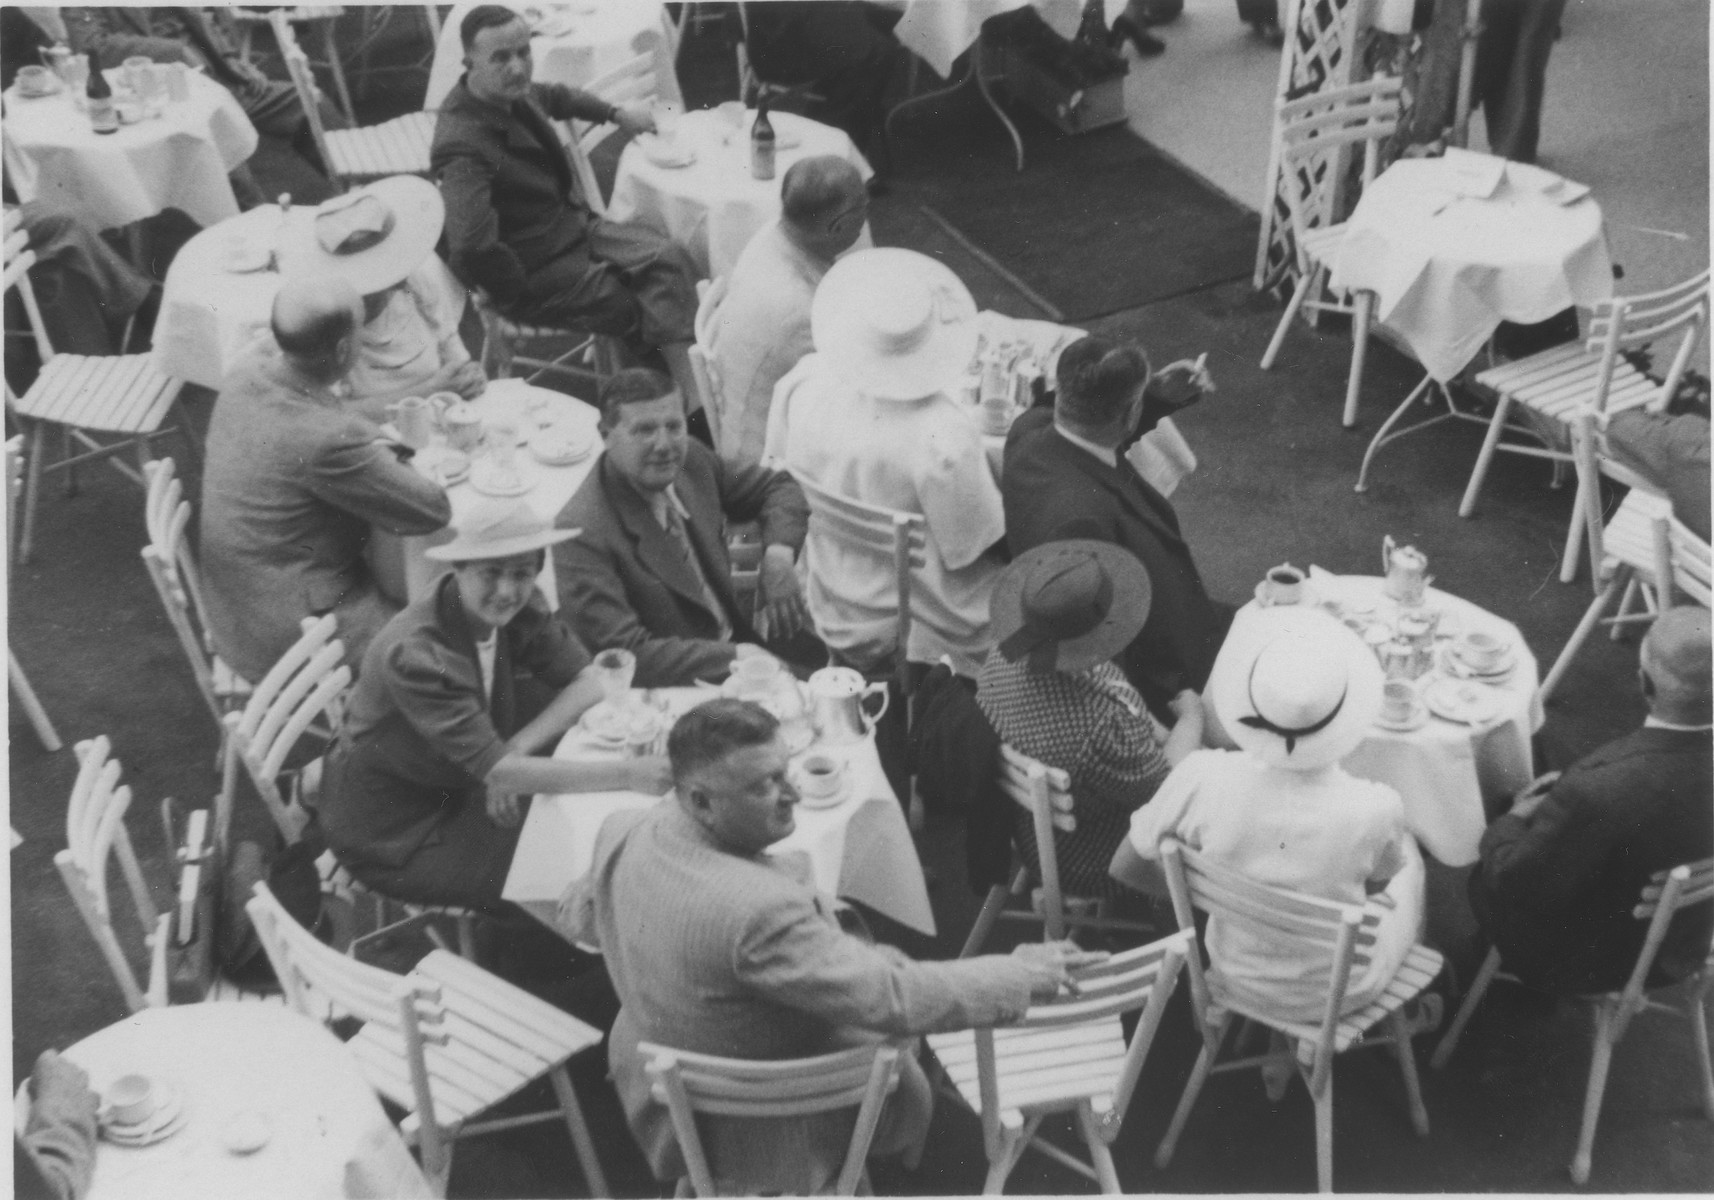 Erna and Boris Segalowitz sit with friends in an outdoor cafe in Karlsbad.